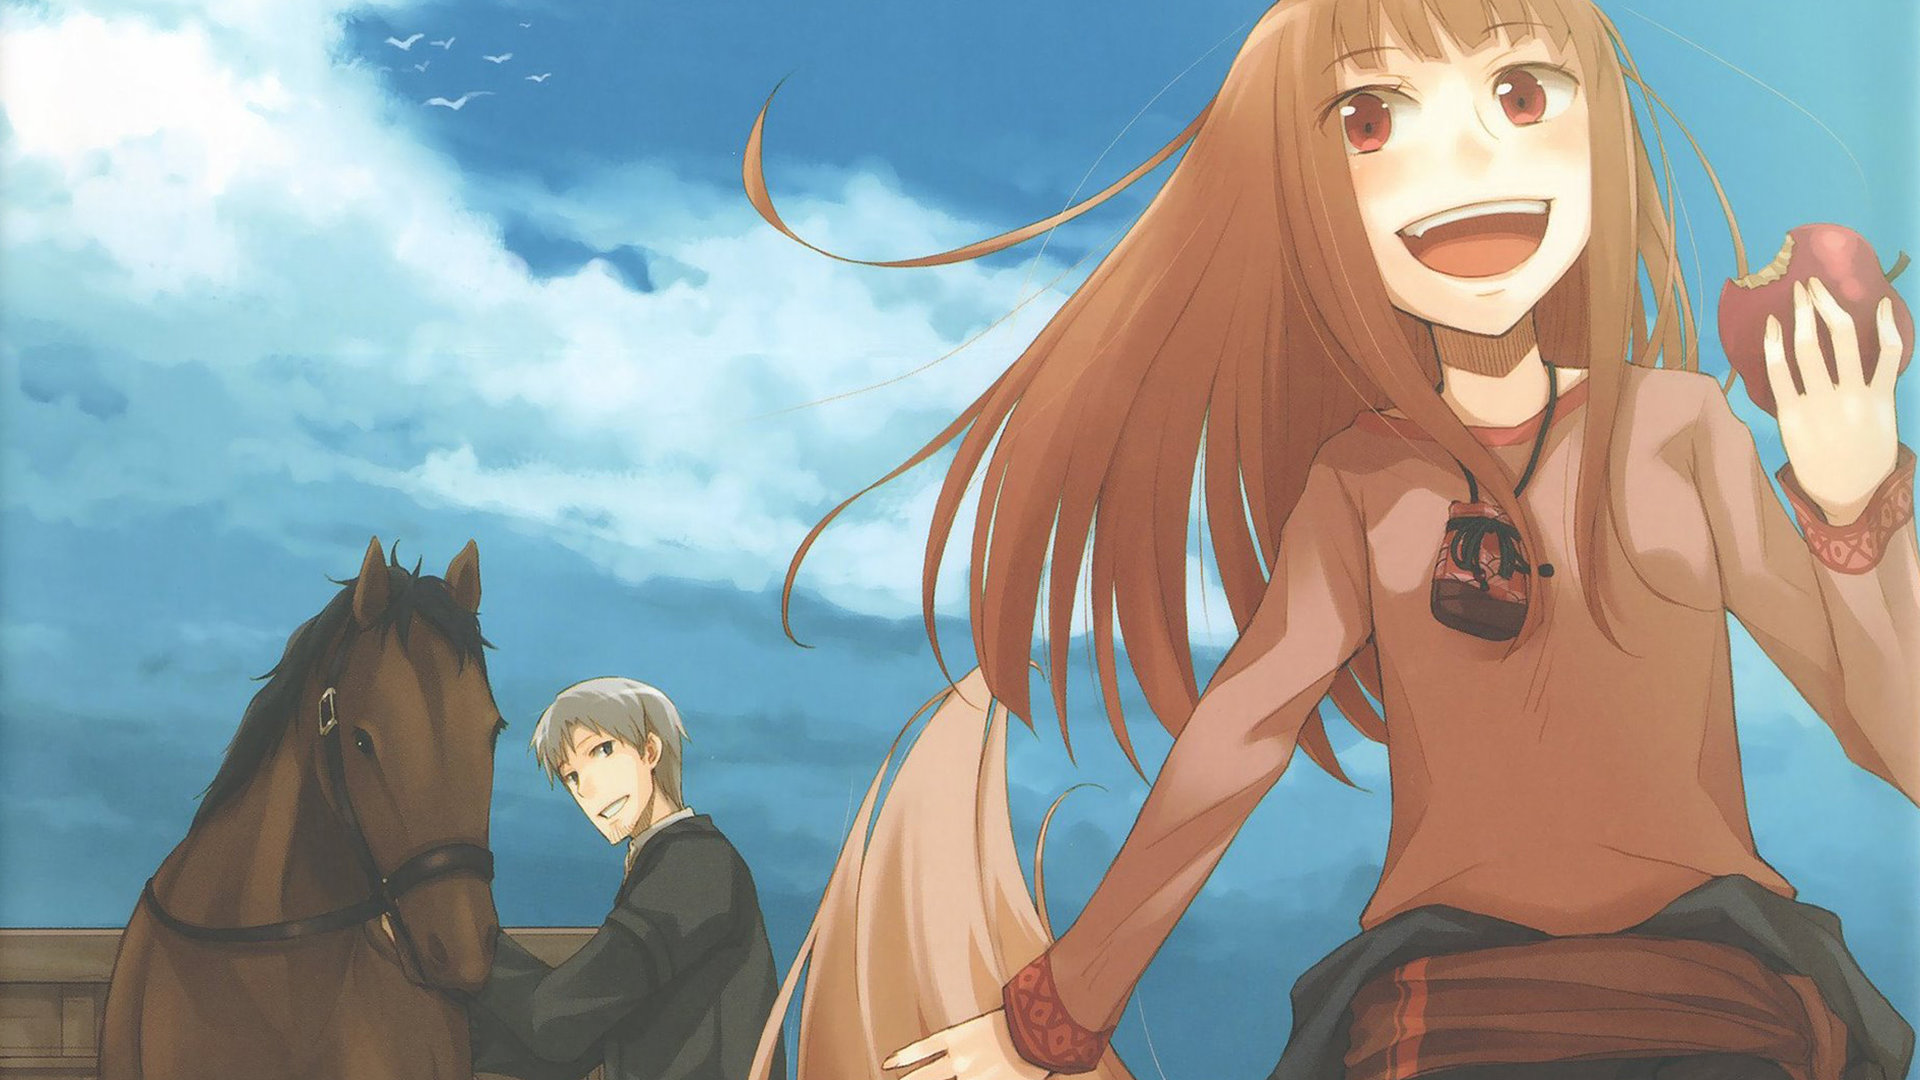 The Best Spice And Wolf Wallpaper Hd Gif